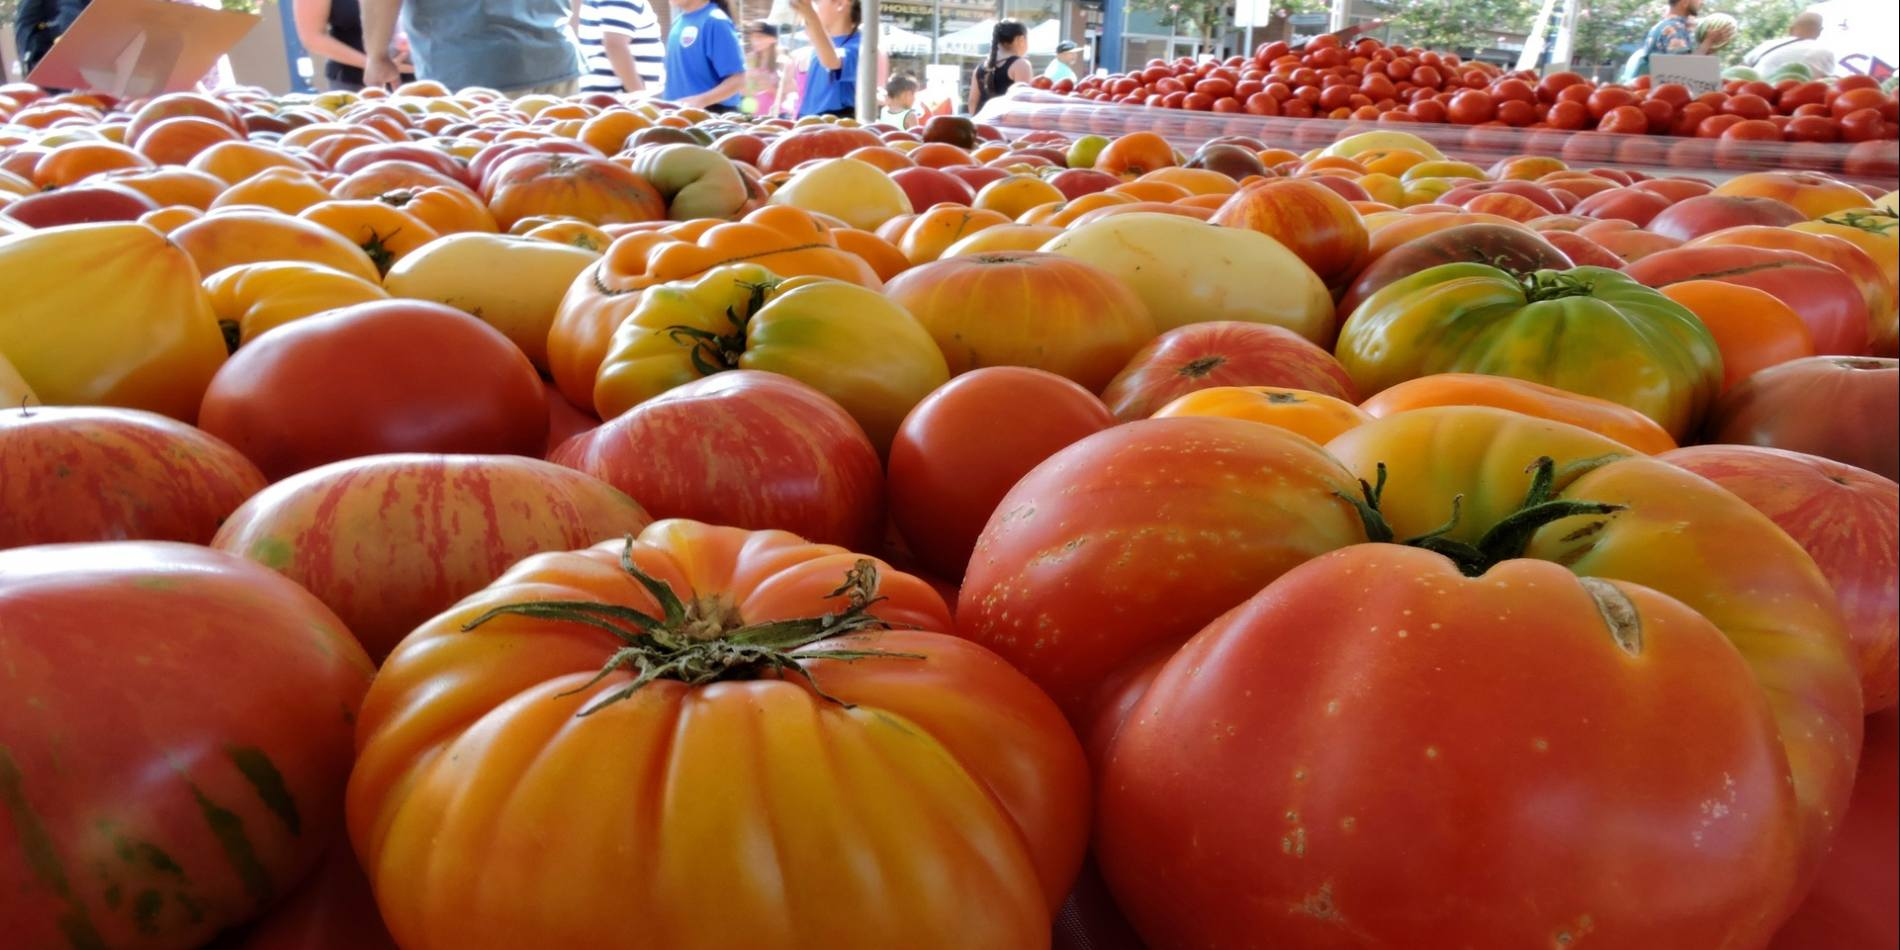 The Fairfield Tomato Festival has been a beloved community event for over 25 years